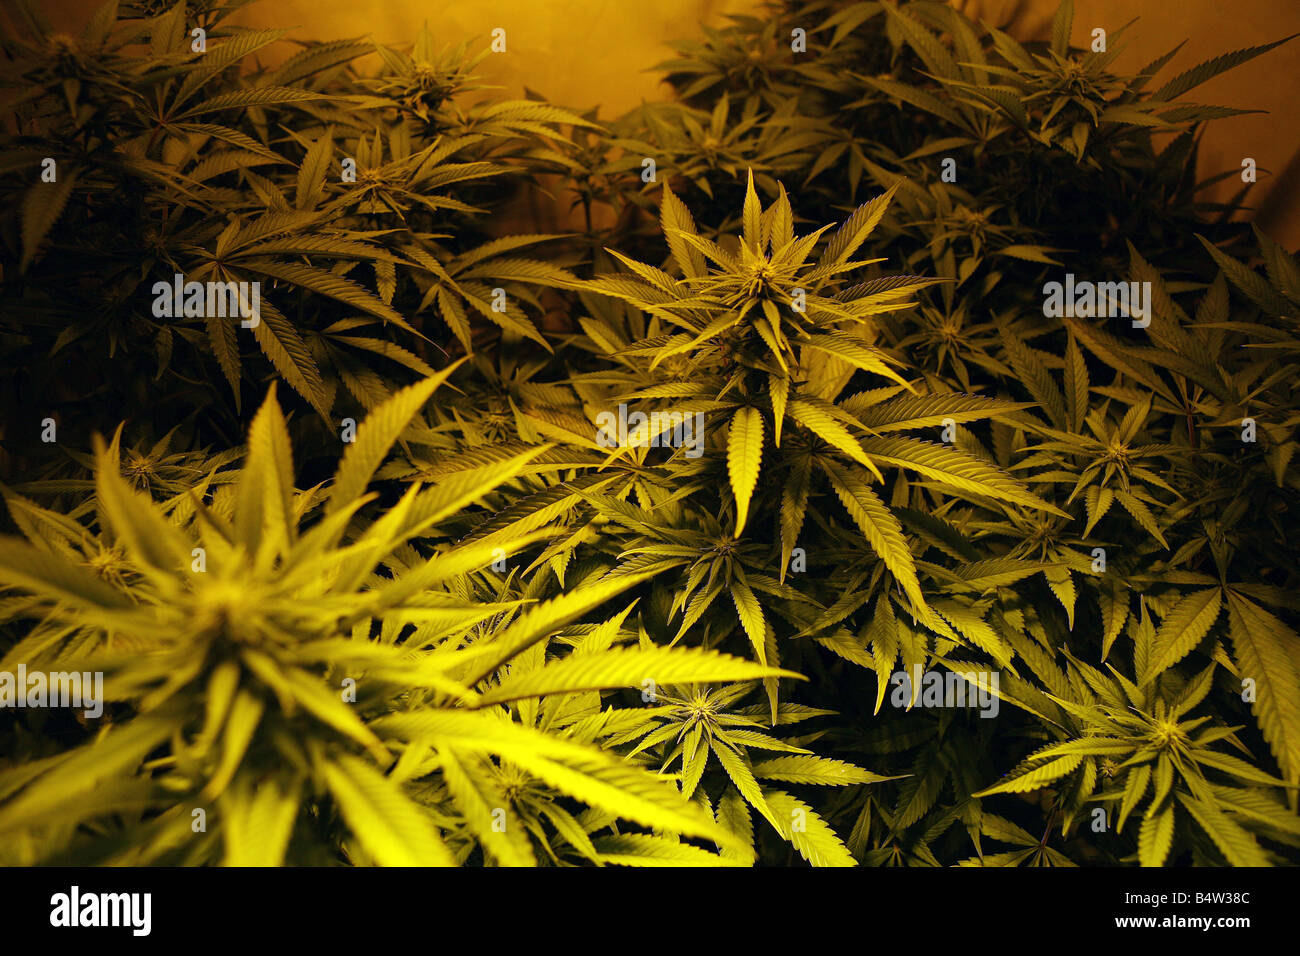 part of a cannabis factory found during police raid in Manchester - Stock Image